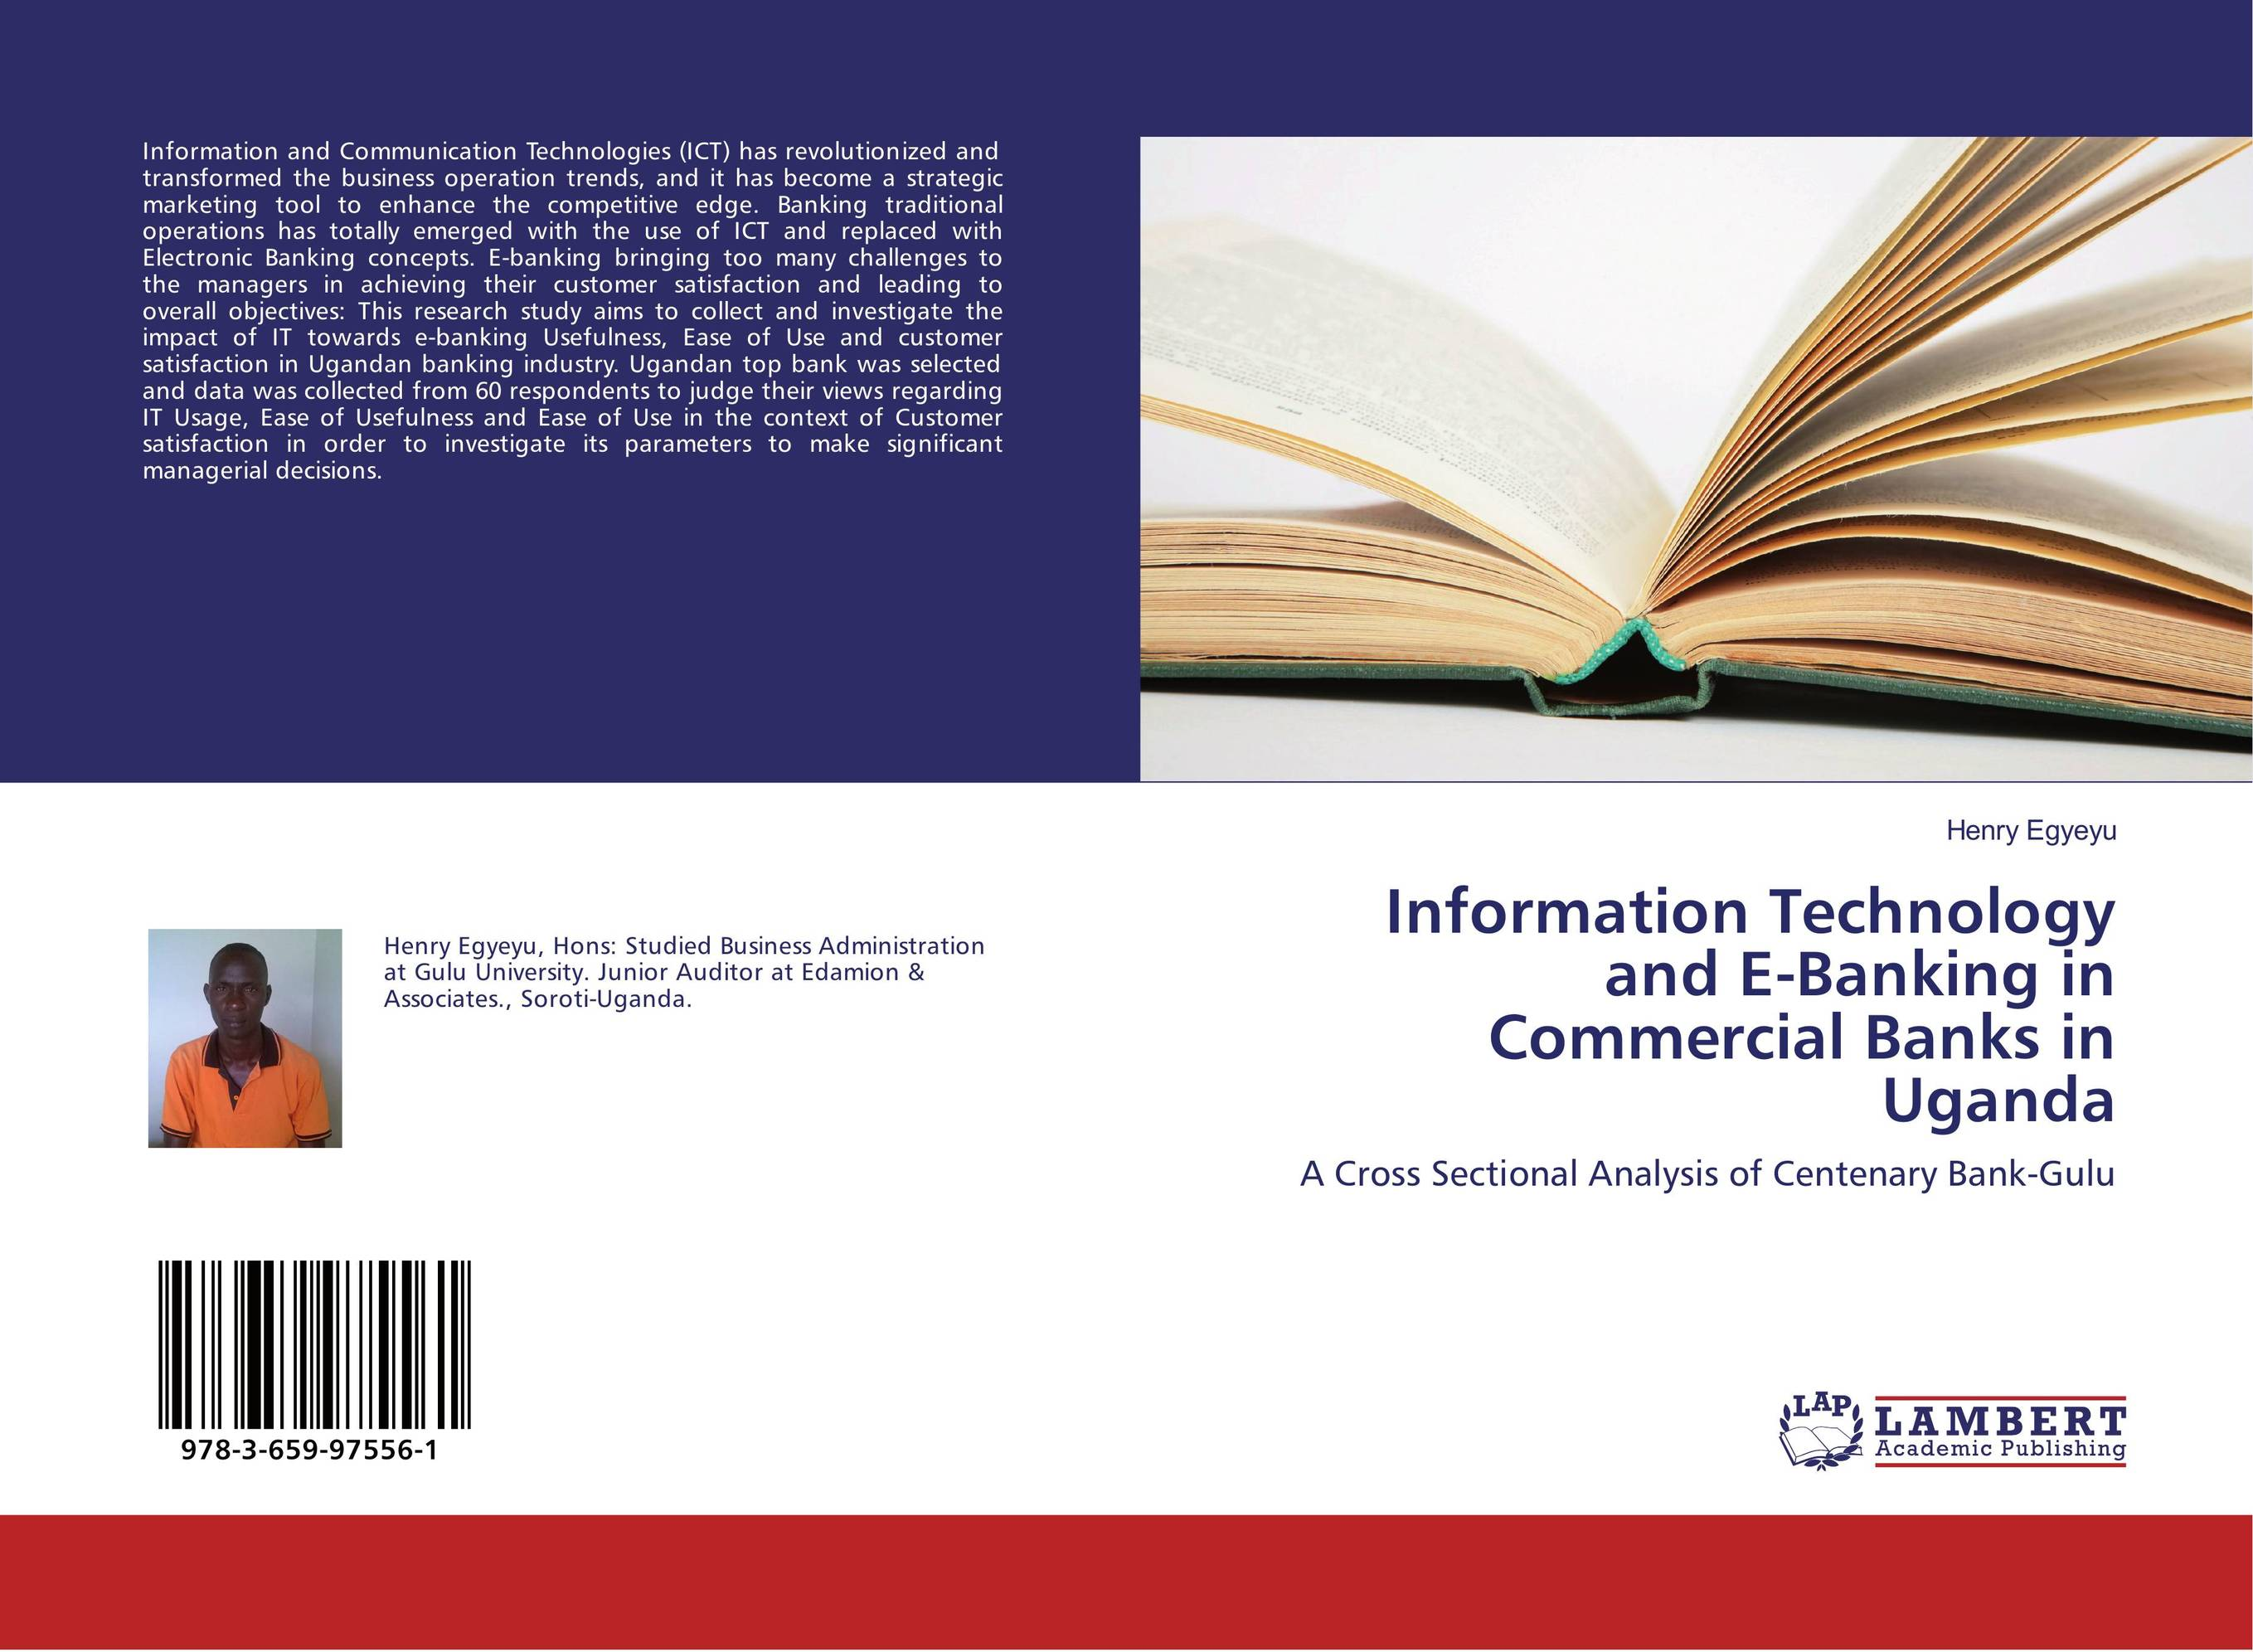 commercial bank industry analysis essay A swot analysis of a bank formally evaluates the financial institution's strengths, weaknesses, opportunities and threats this analysis identifies these four main elements.